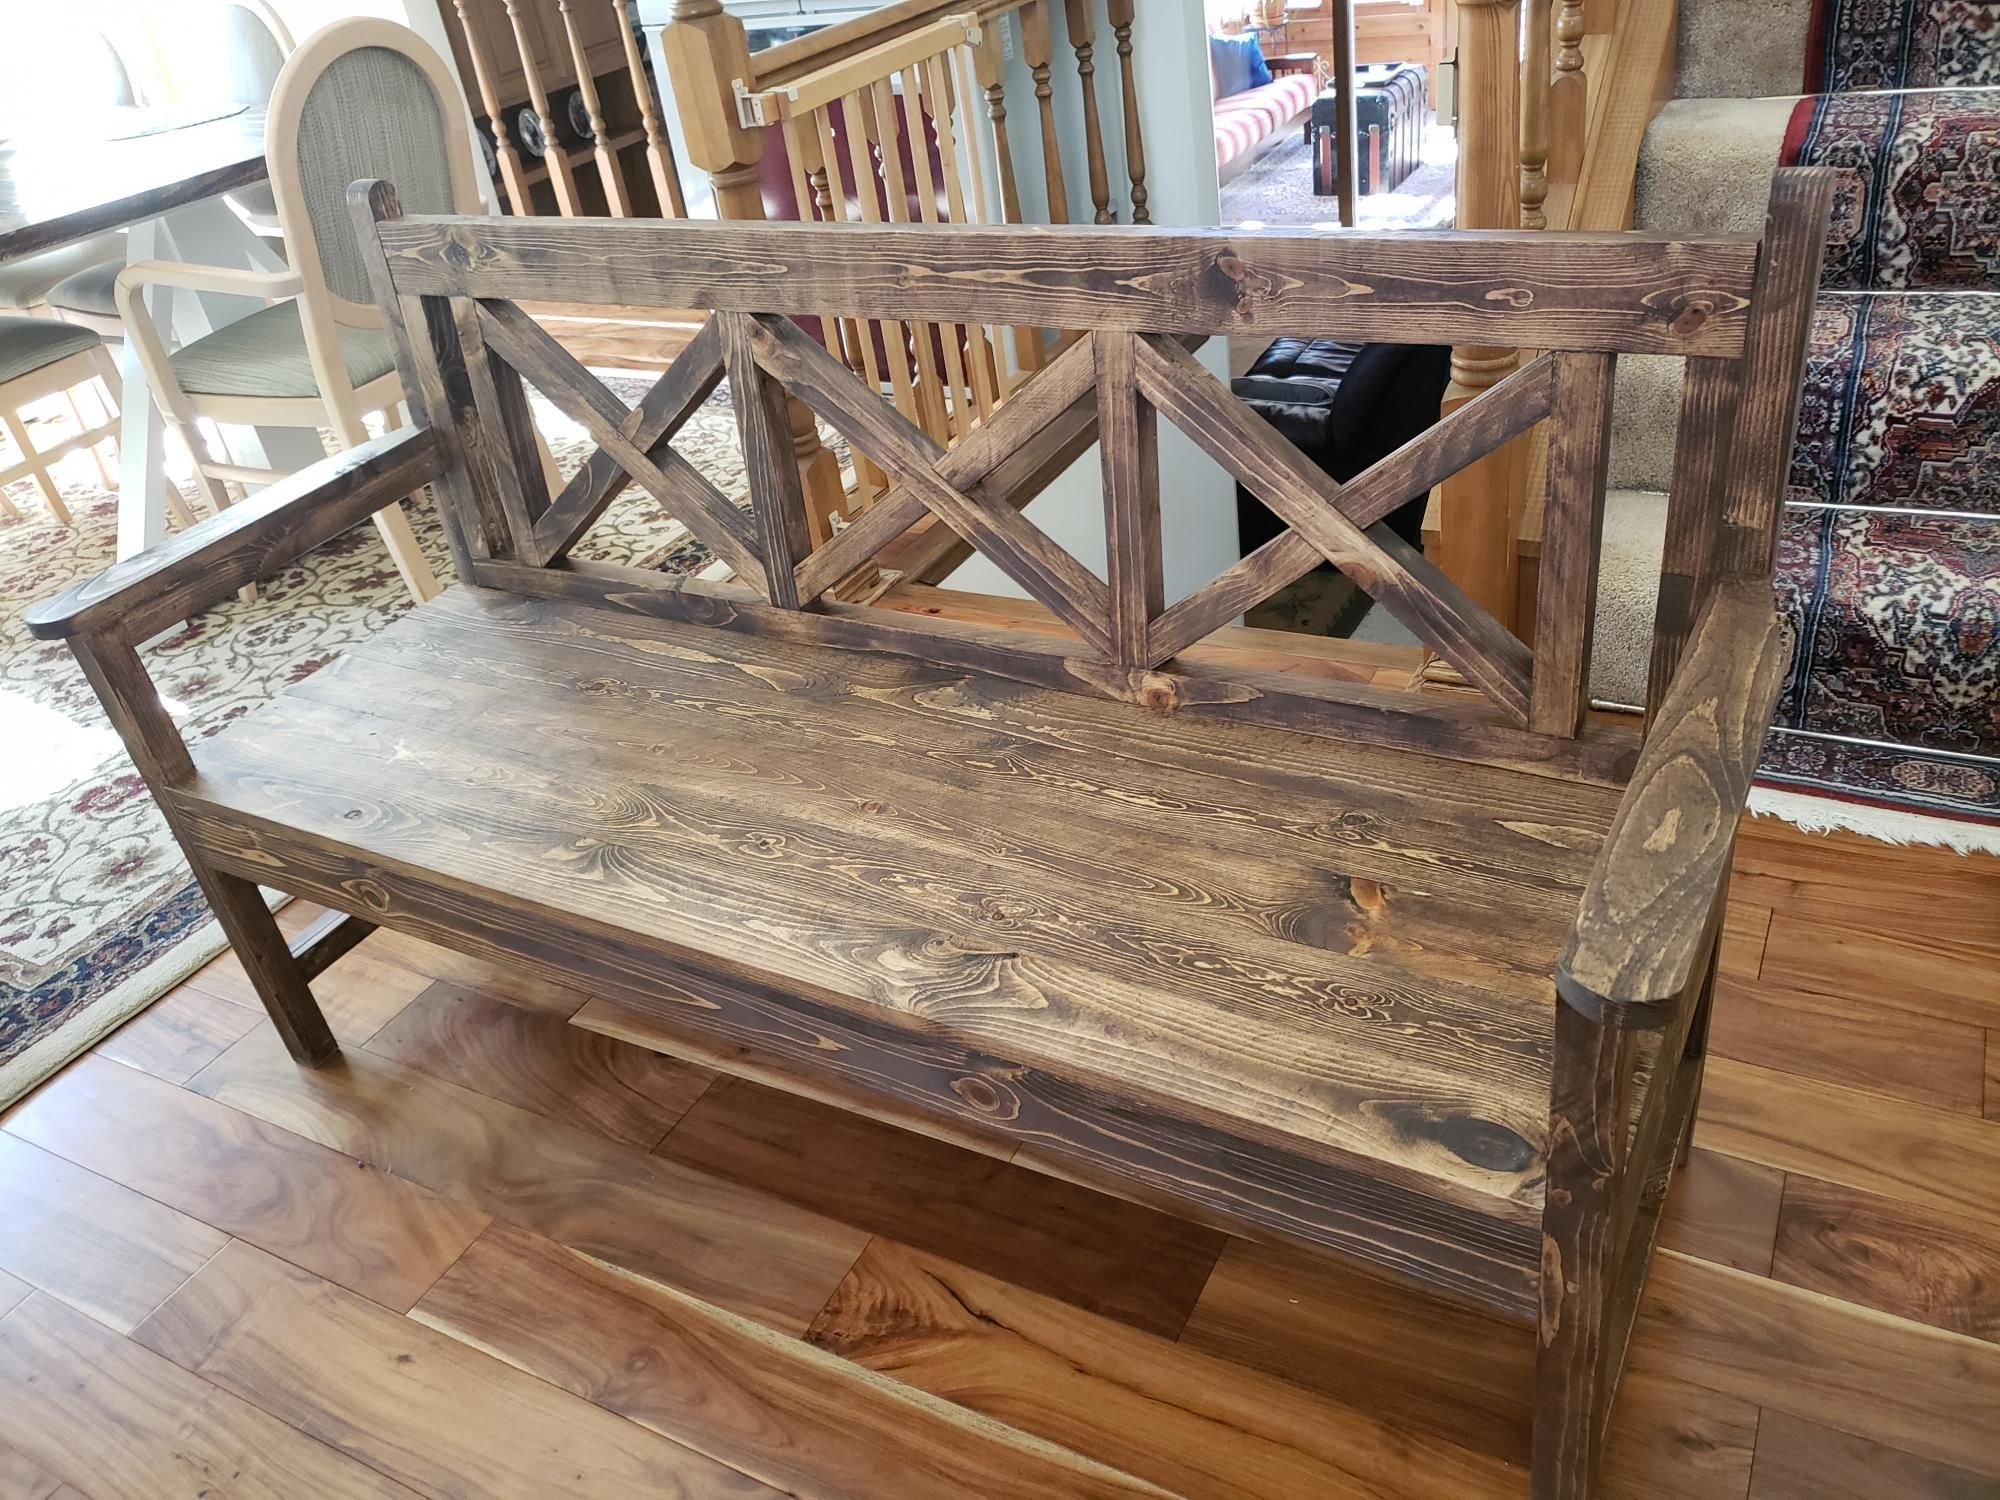 Farmhouse Dining Bench with back support 3 seats version